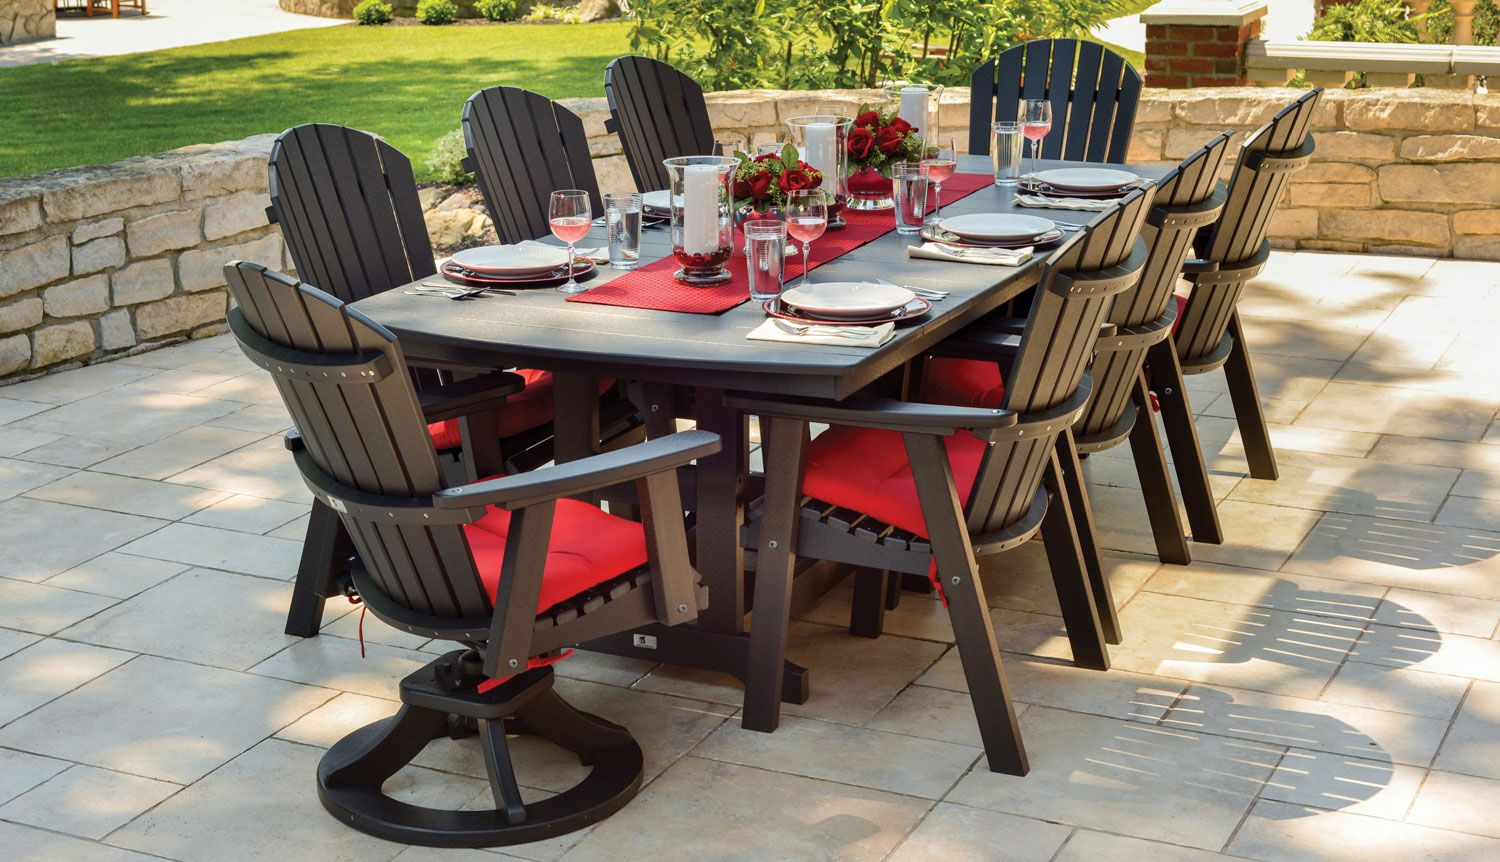 Tips On How To Buy An Outdoor Dining Set